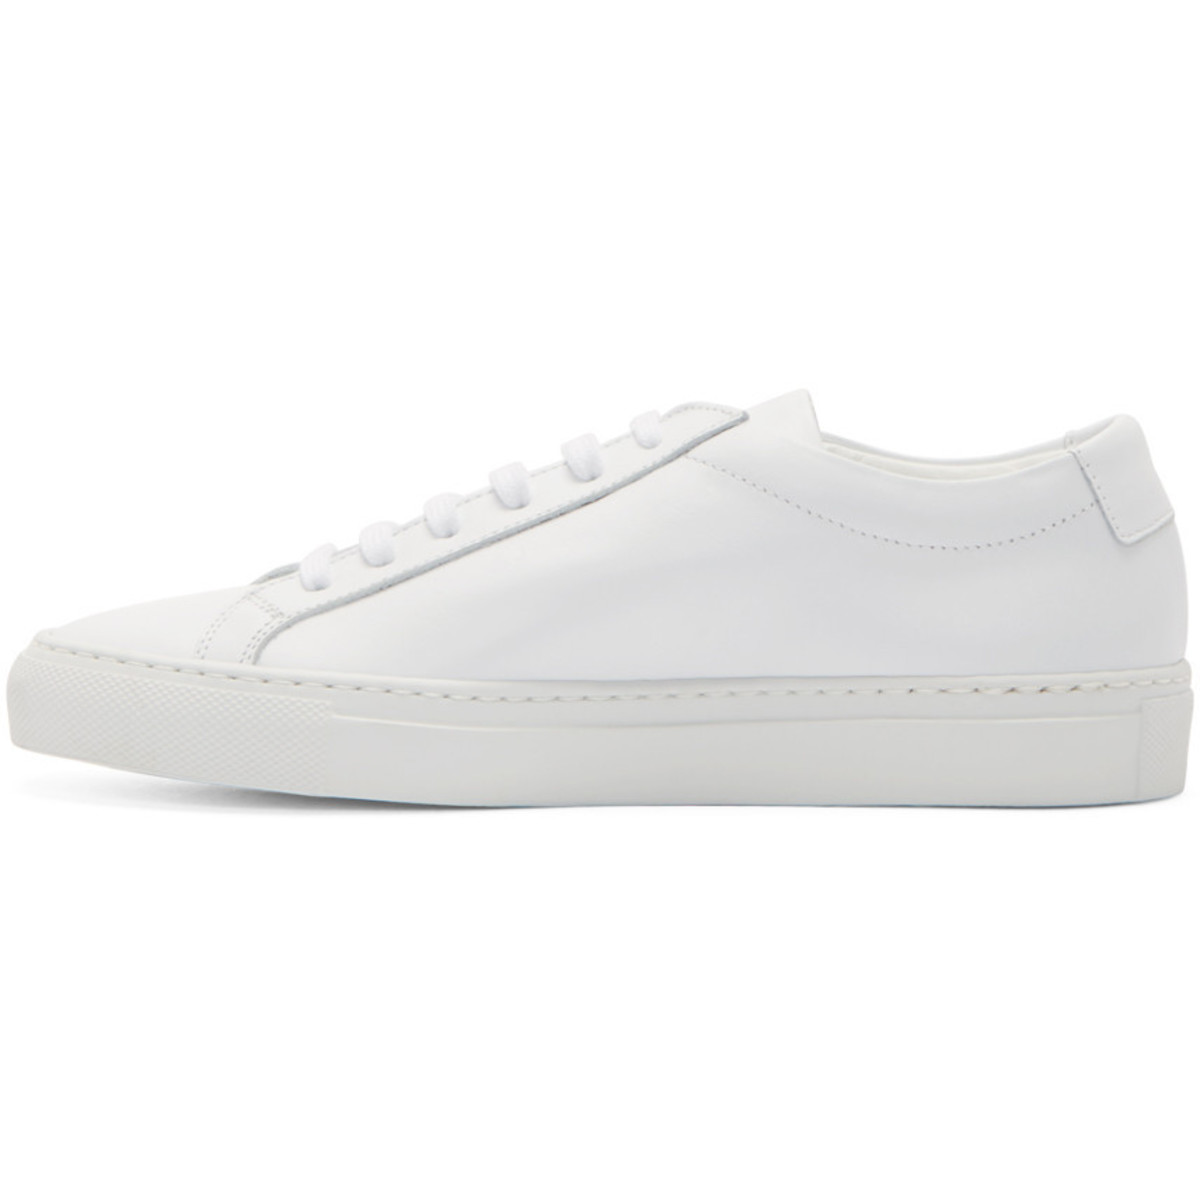 common projects original achilles leather sneakers garmentory. Black Bedroom Furniture Sets. Home Design Ideas